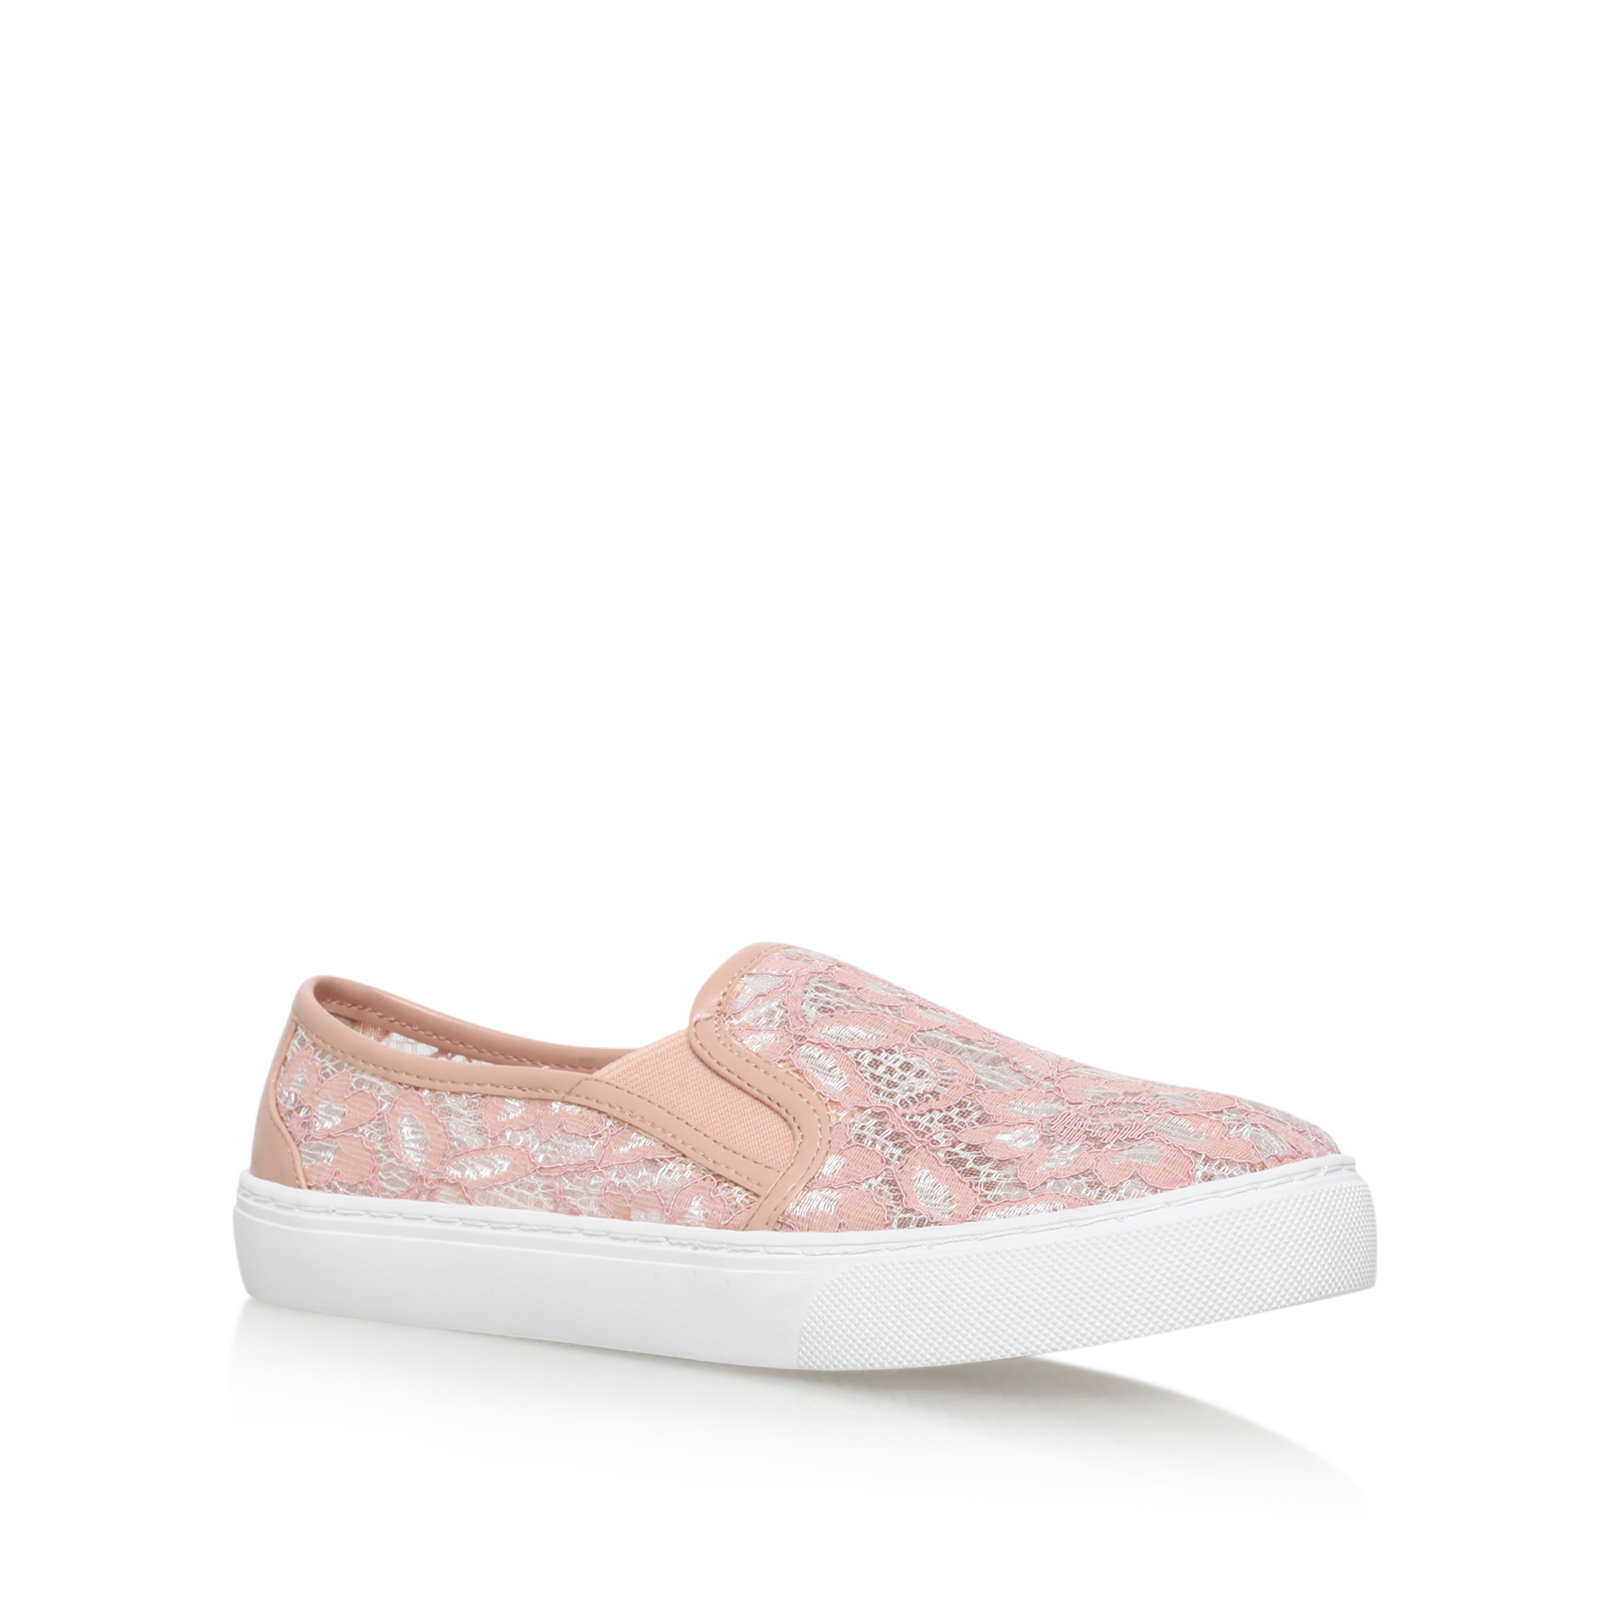 LACE SLIP ON TRAINER